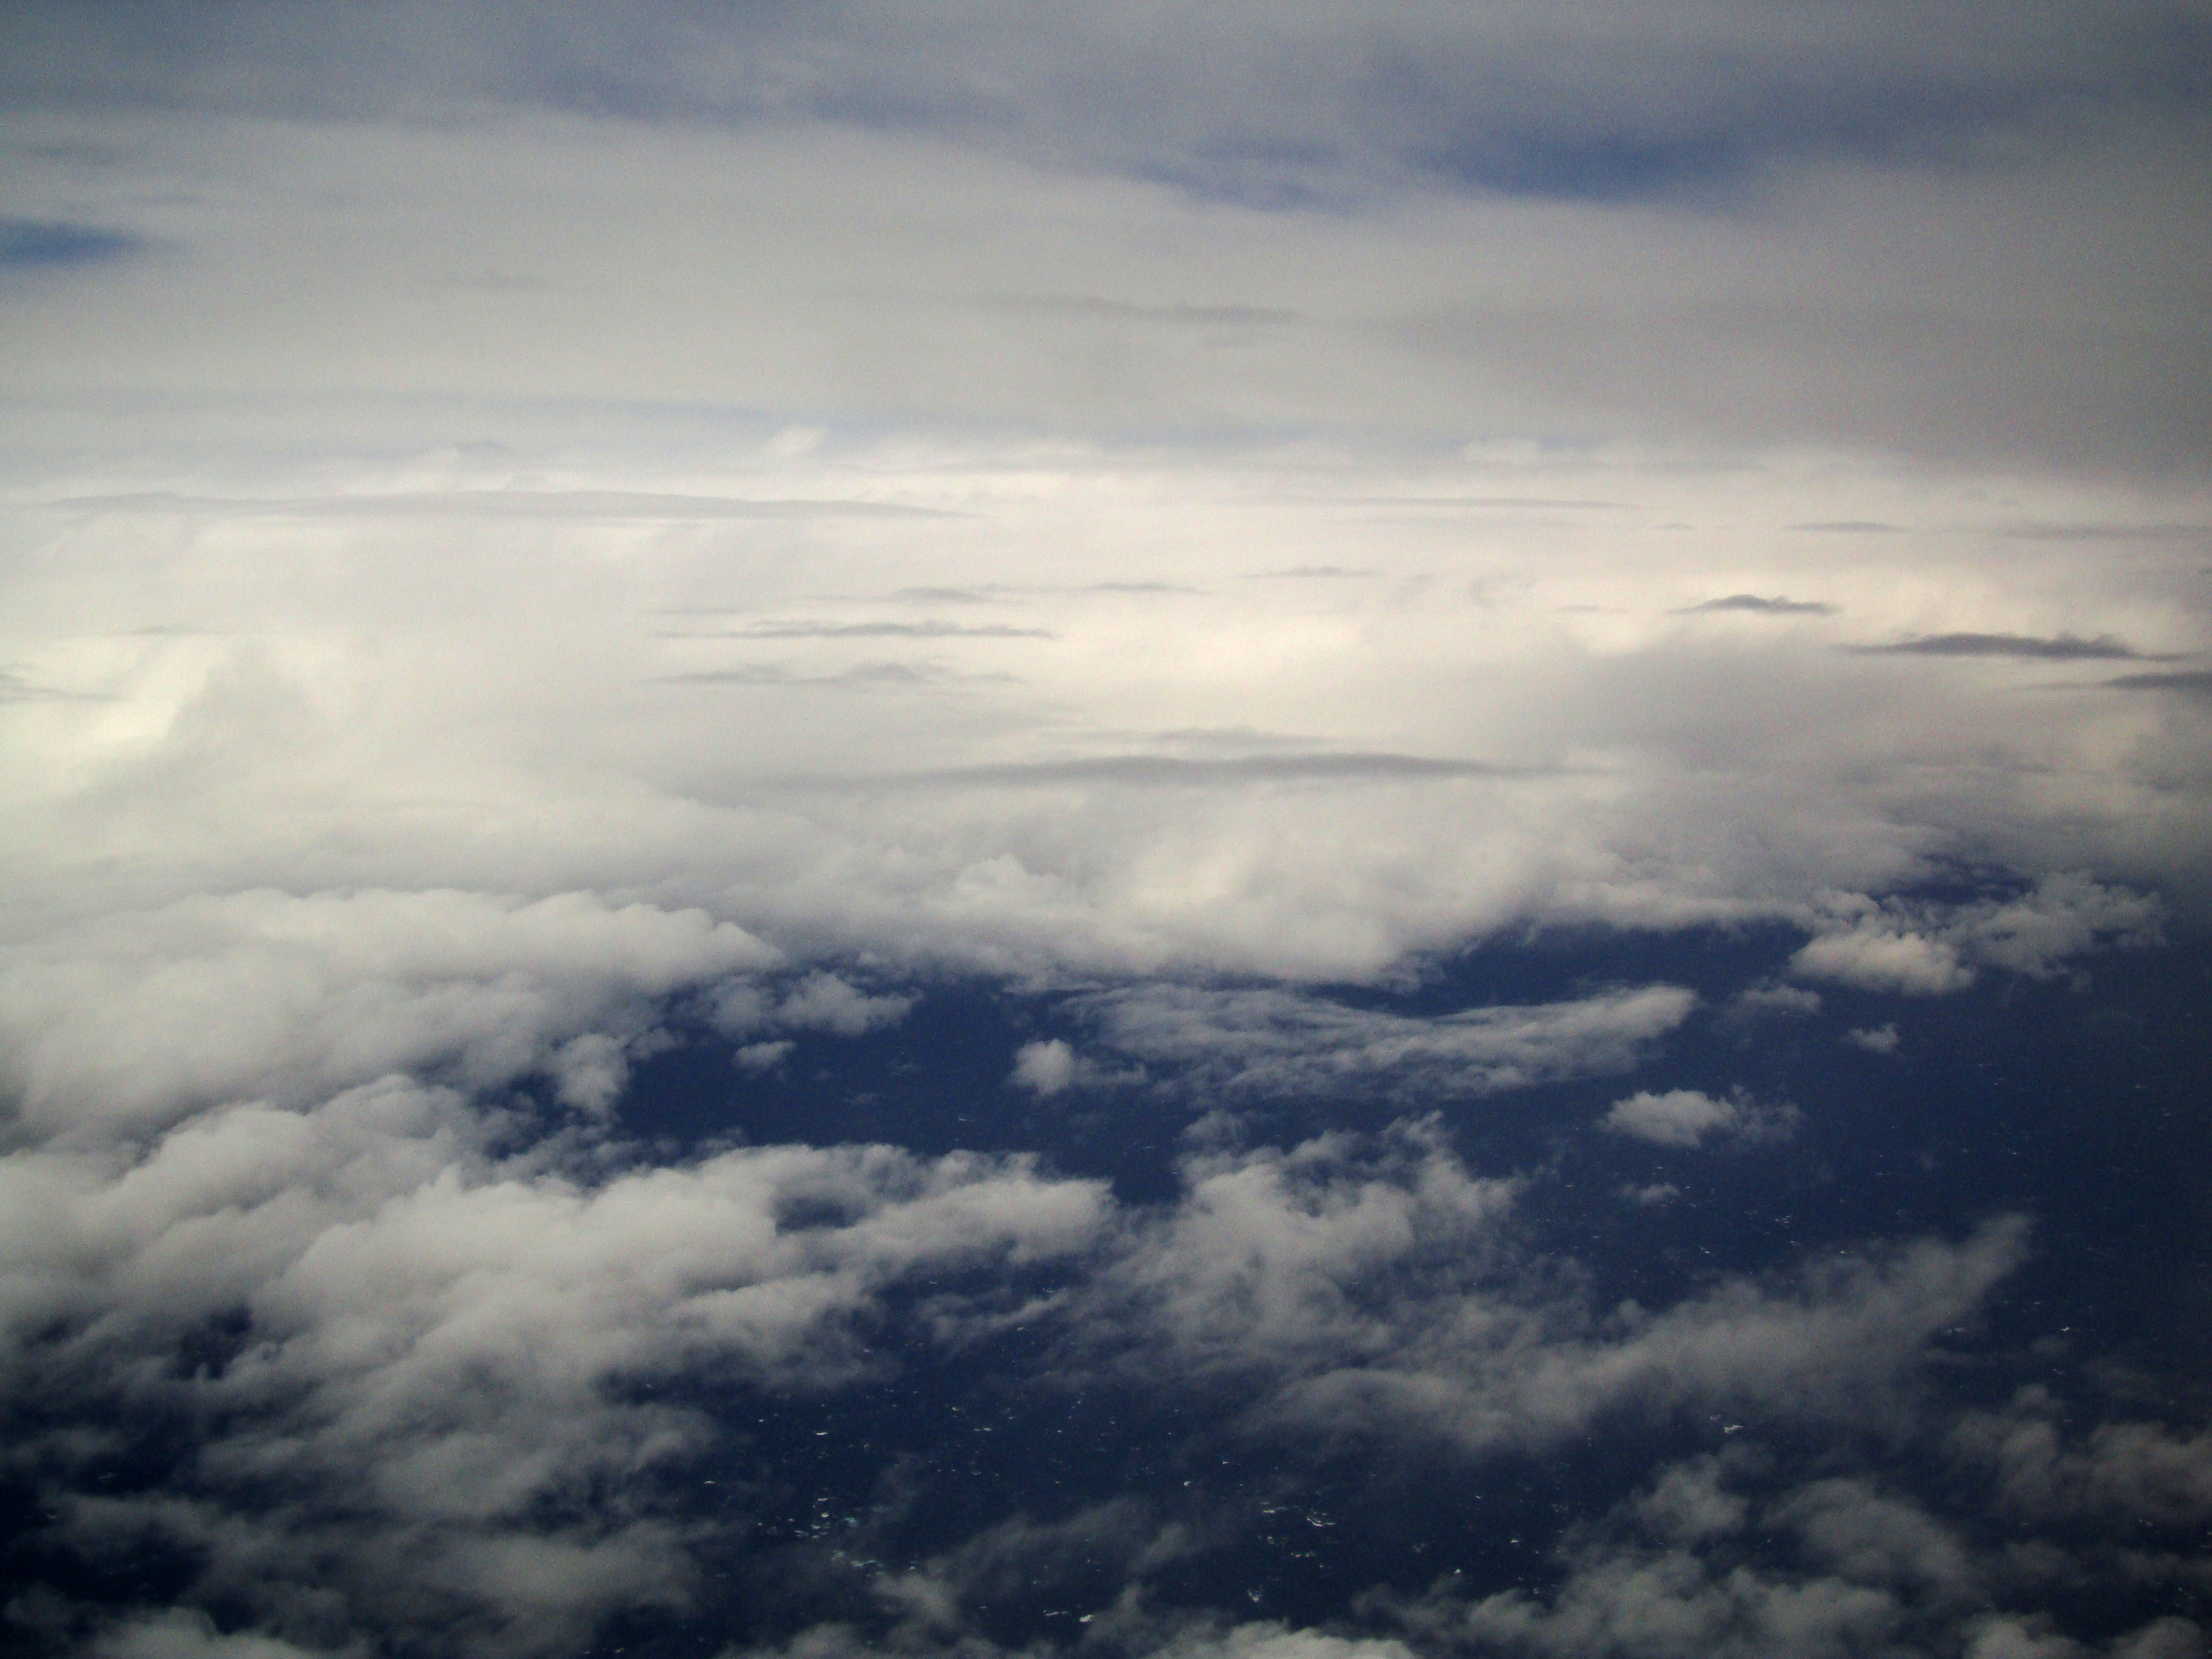 Textures Clouds Formations Sky Storms Weather Phenomena Aerial Views 20